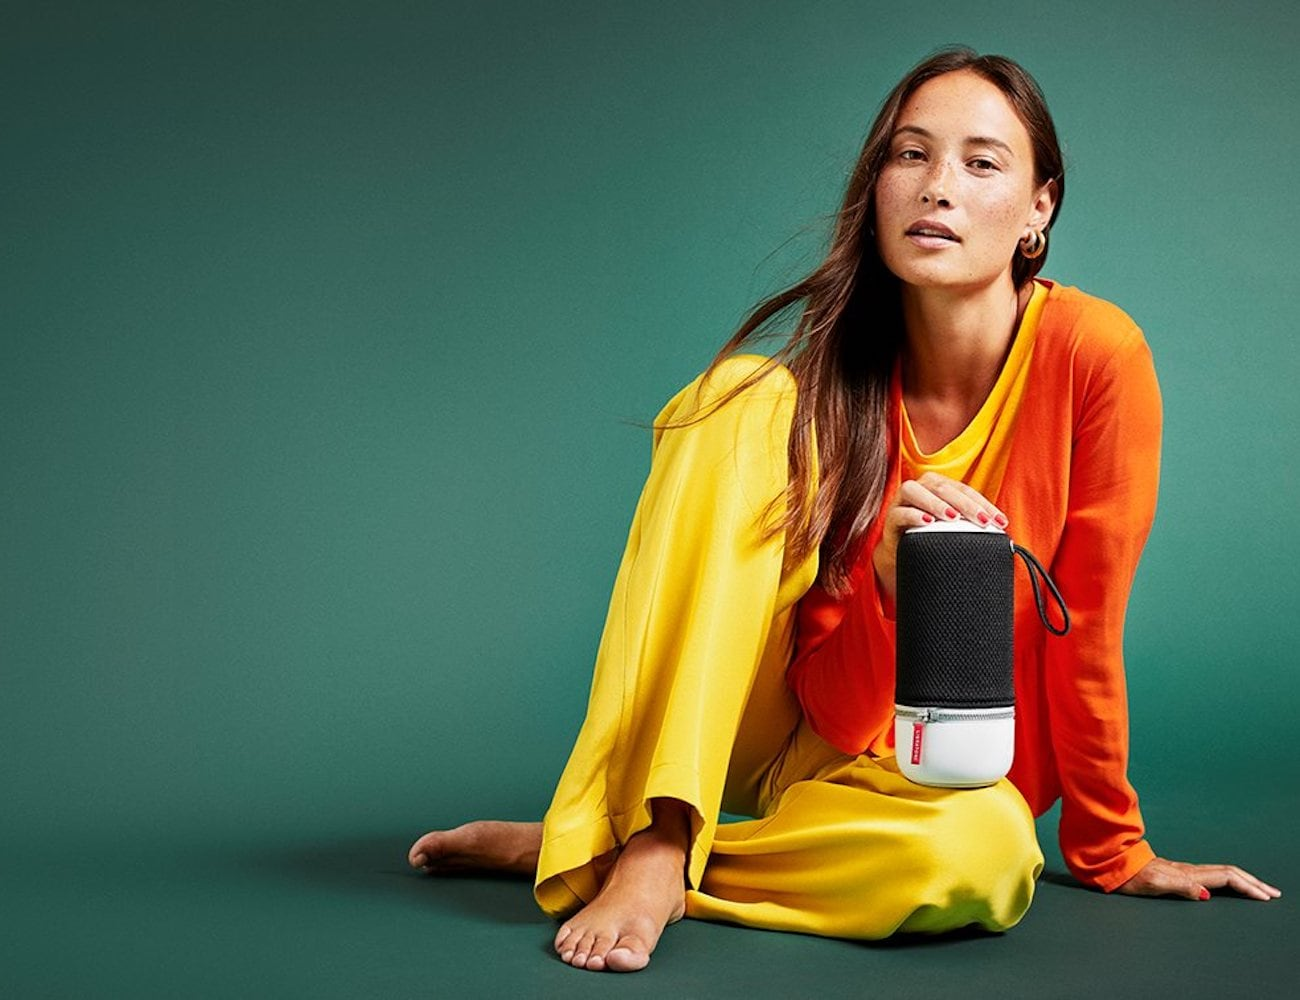 Libratone ZIPP MINI 2 Wireless Portable Smart Speaker comes with a handle to be easily carried